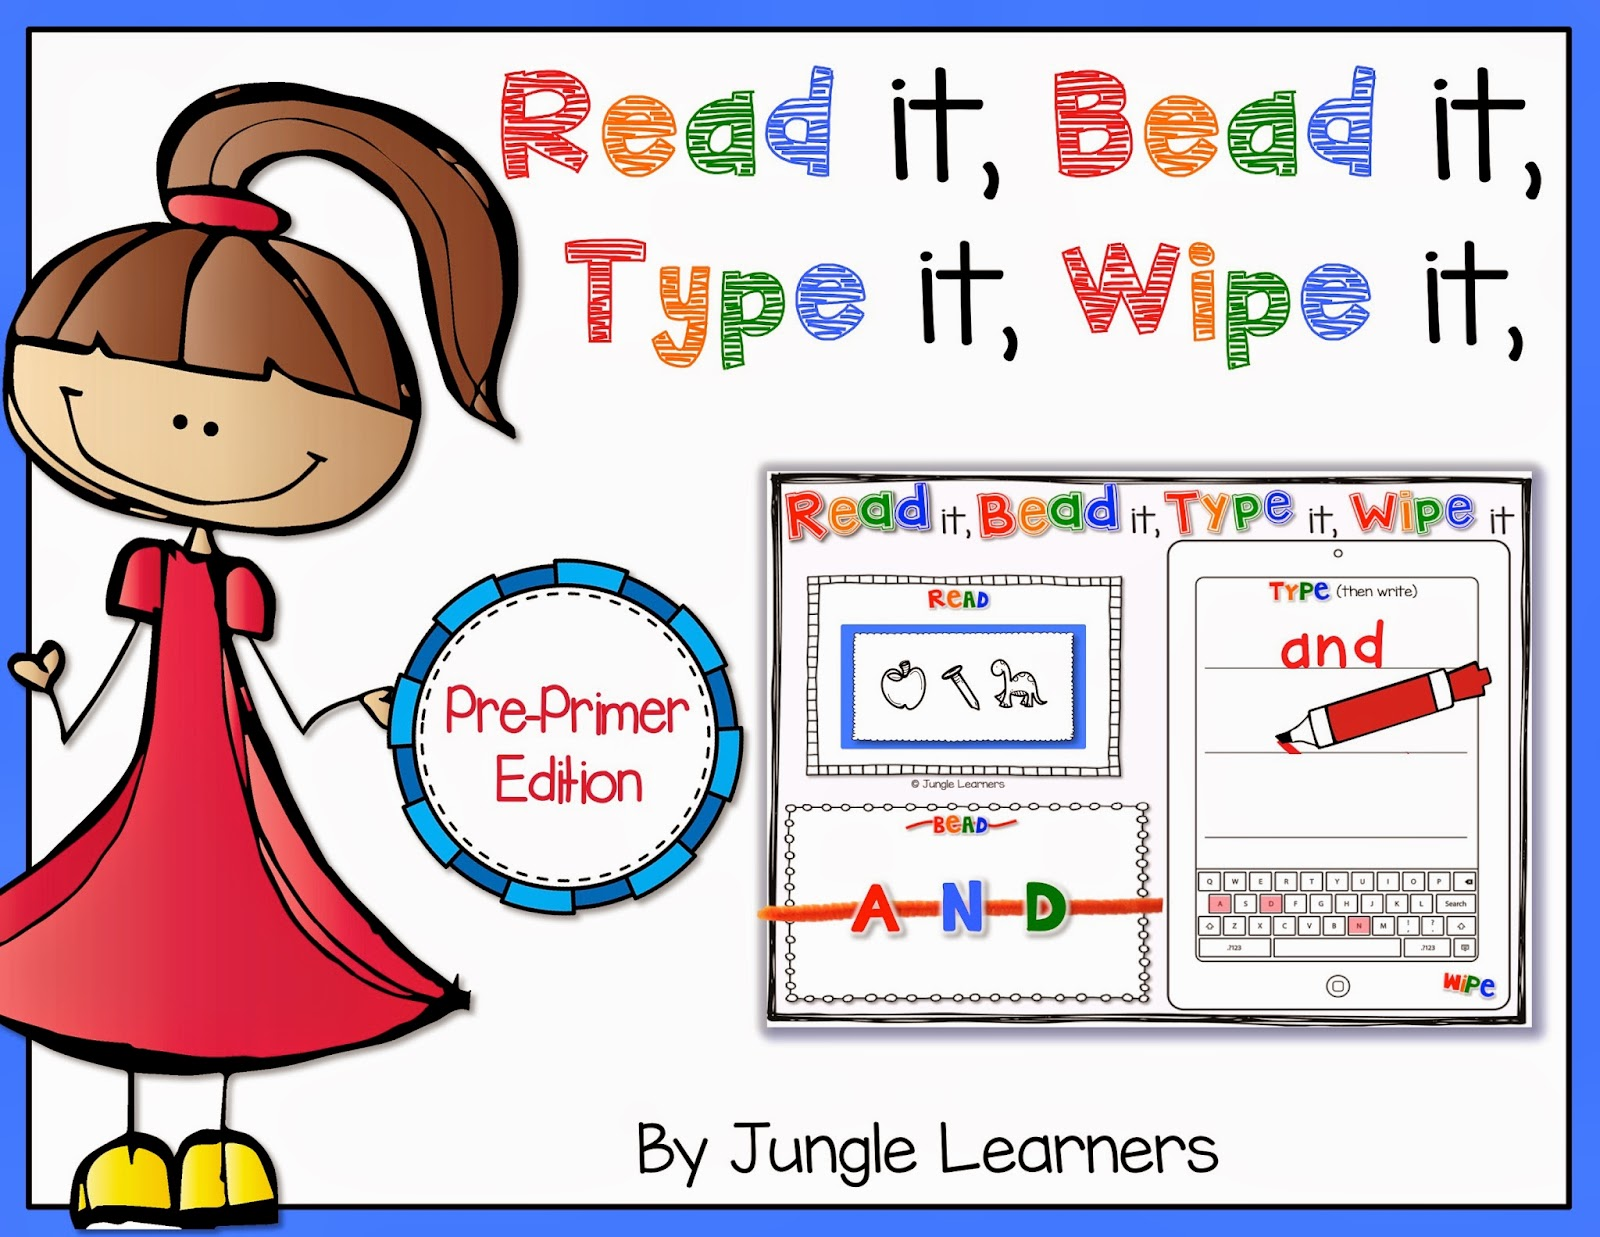 Read it, Bead it, Type it, Wipe it [Pre-Primer Edition]